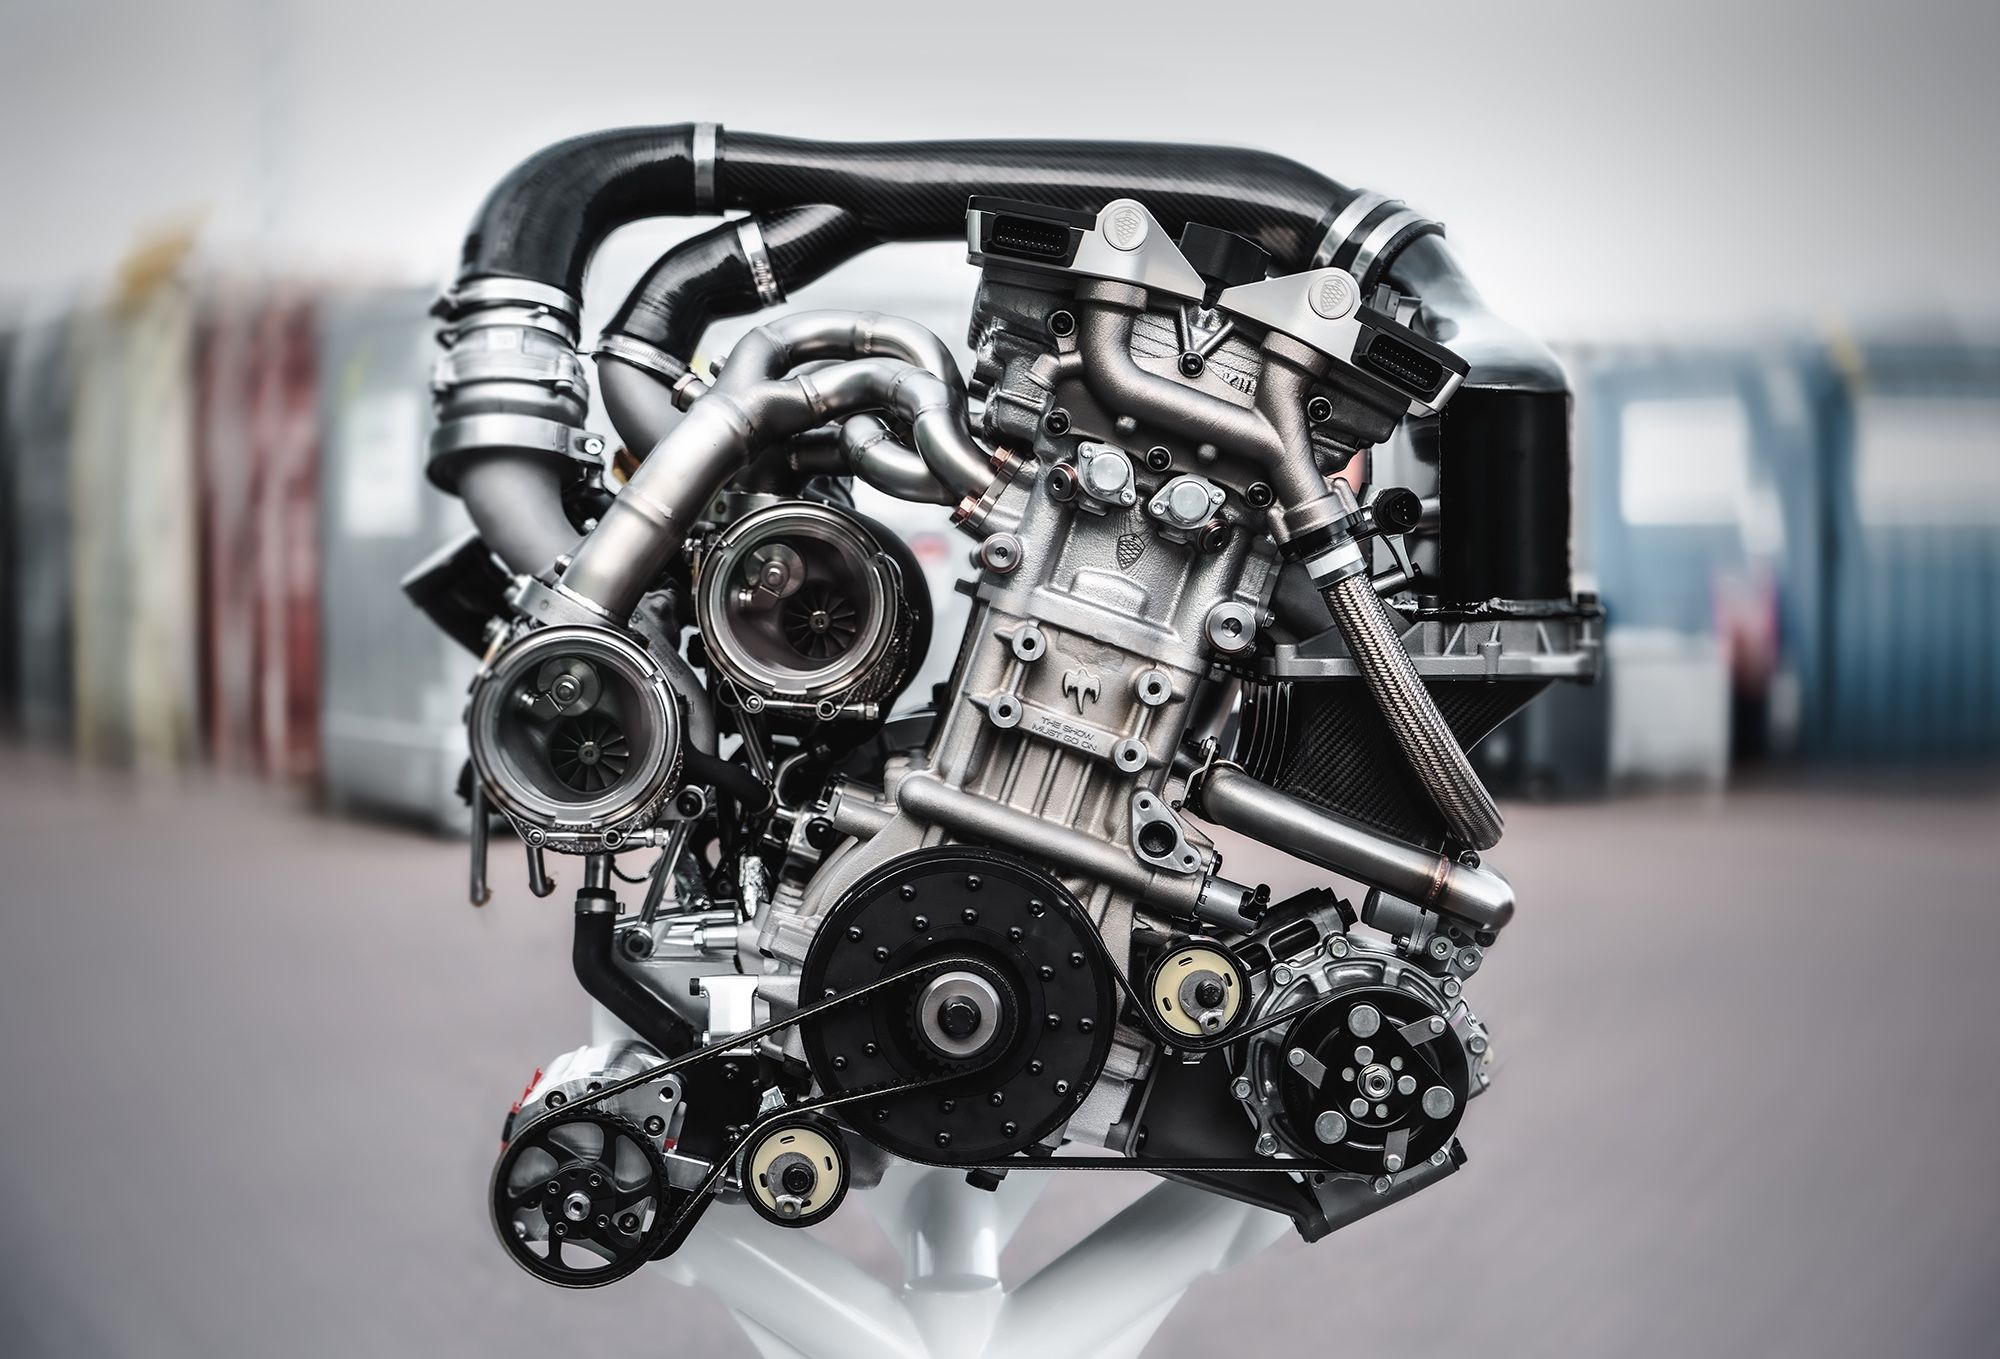 How Koenigsegg S 2 Liter No Cam Engine Makes 600 Horsepower